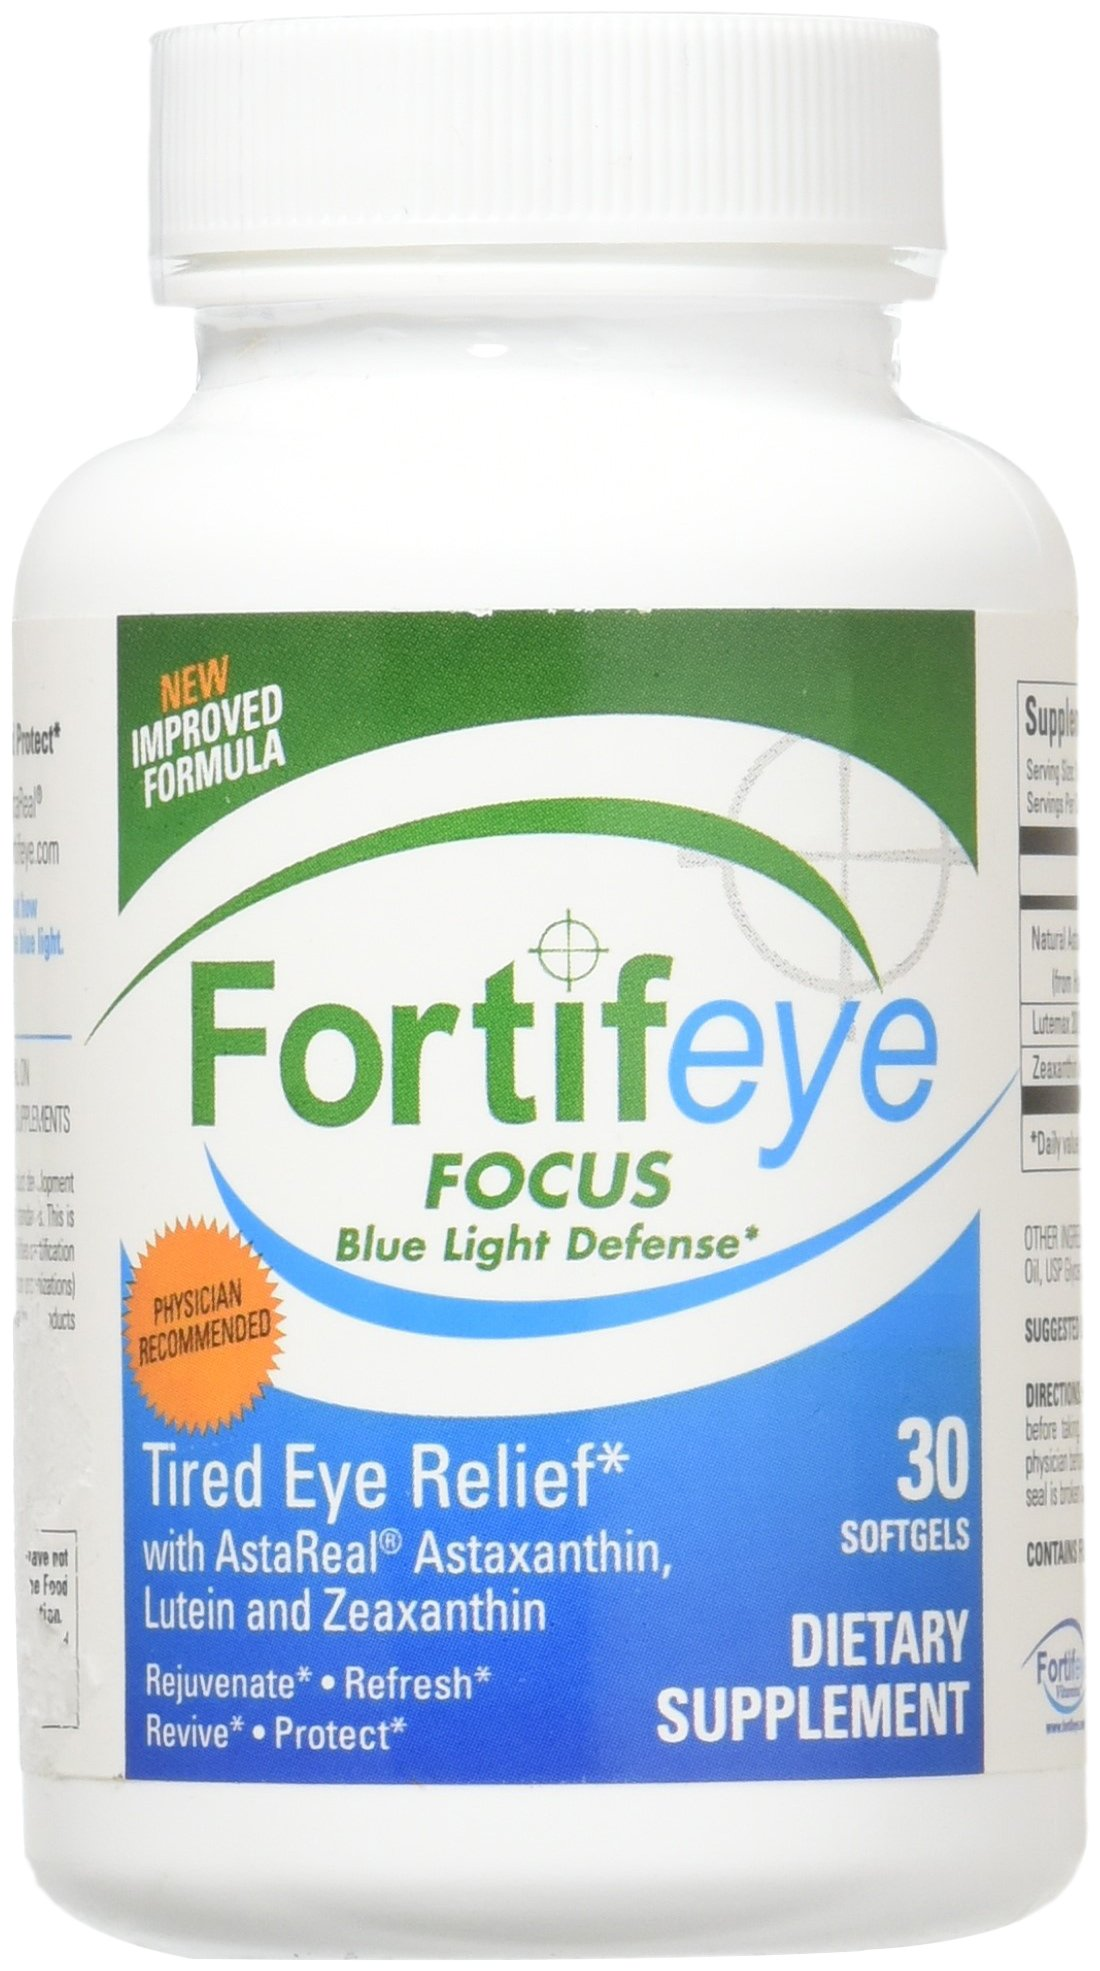 Fortifeye Vitamins Super Omega 3 Fish Oil Natural Eye Care Softgel Green World Focus Supplement Complex Mix Of Macular Carotenoids Including Astaxanthin Lutein